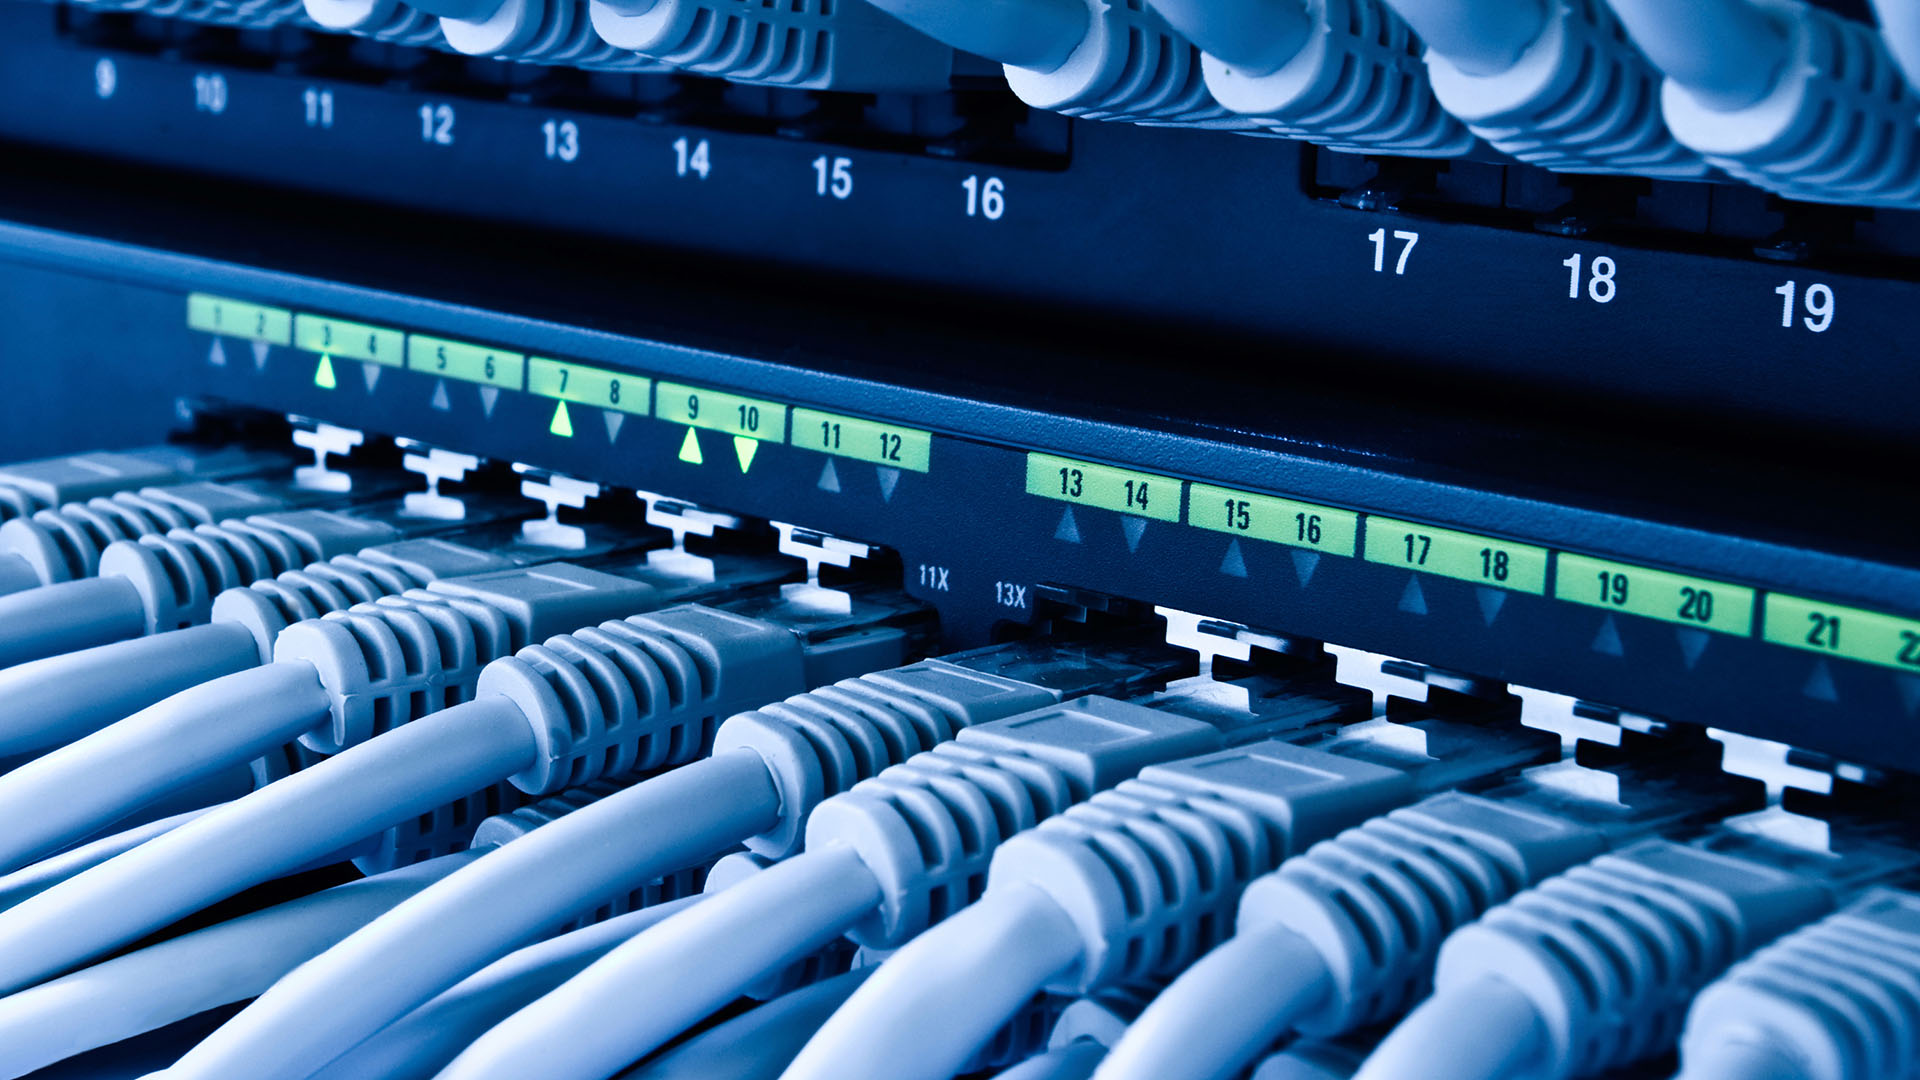 Network Switch Ethernet Gip Recia